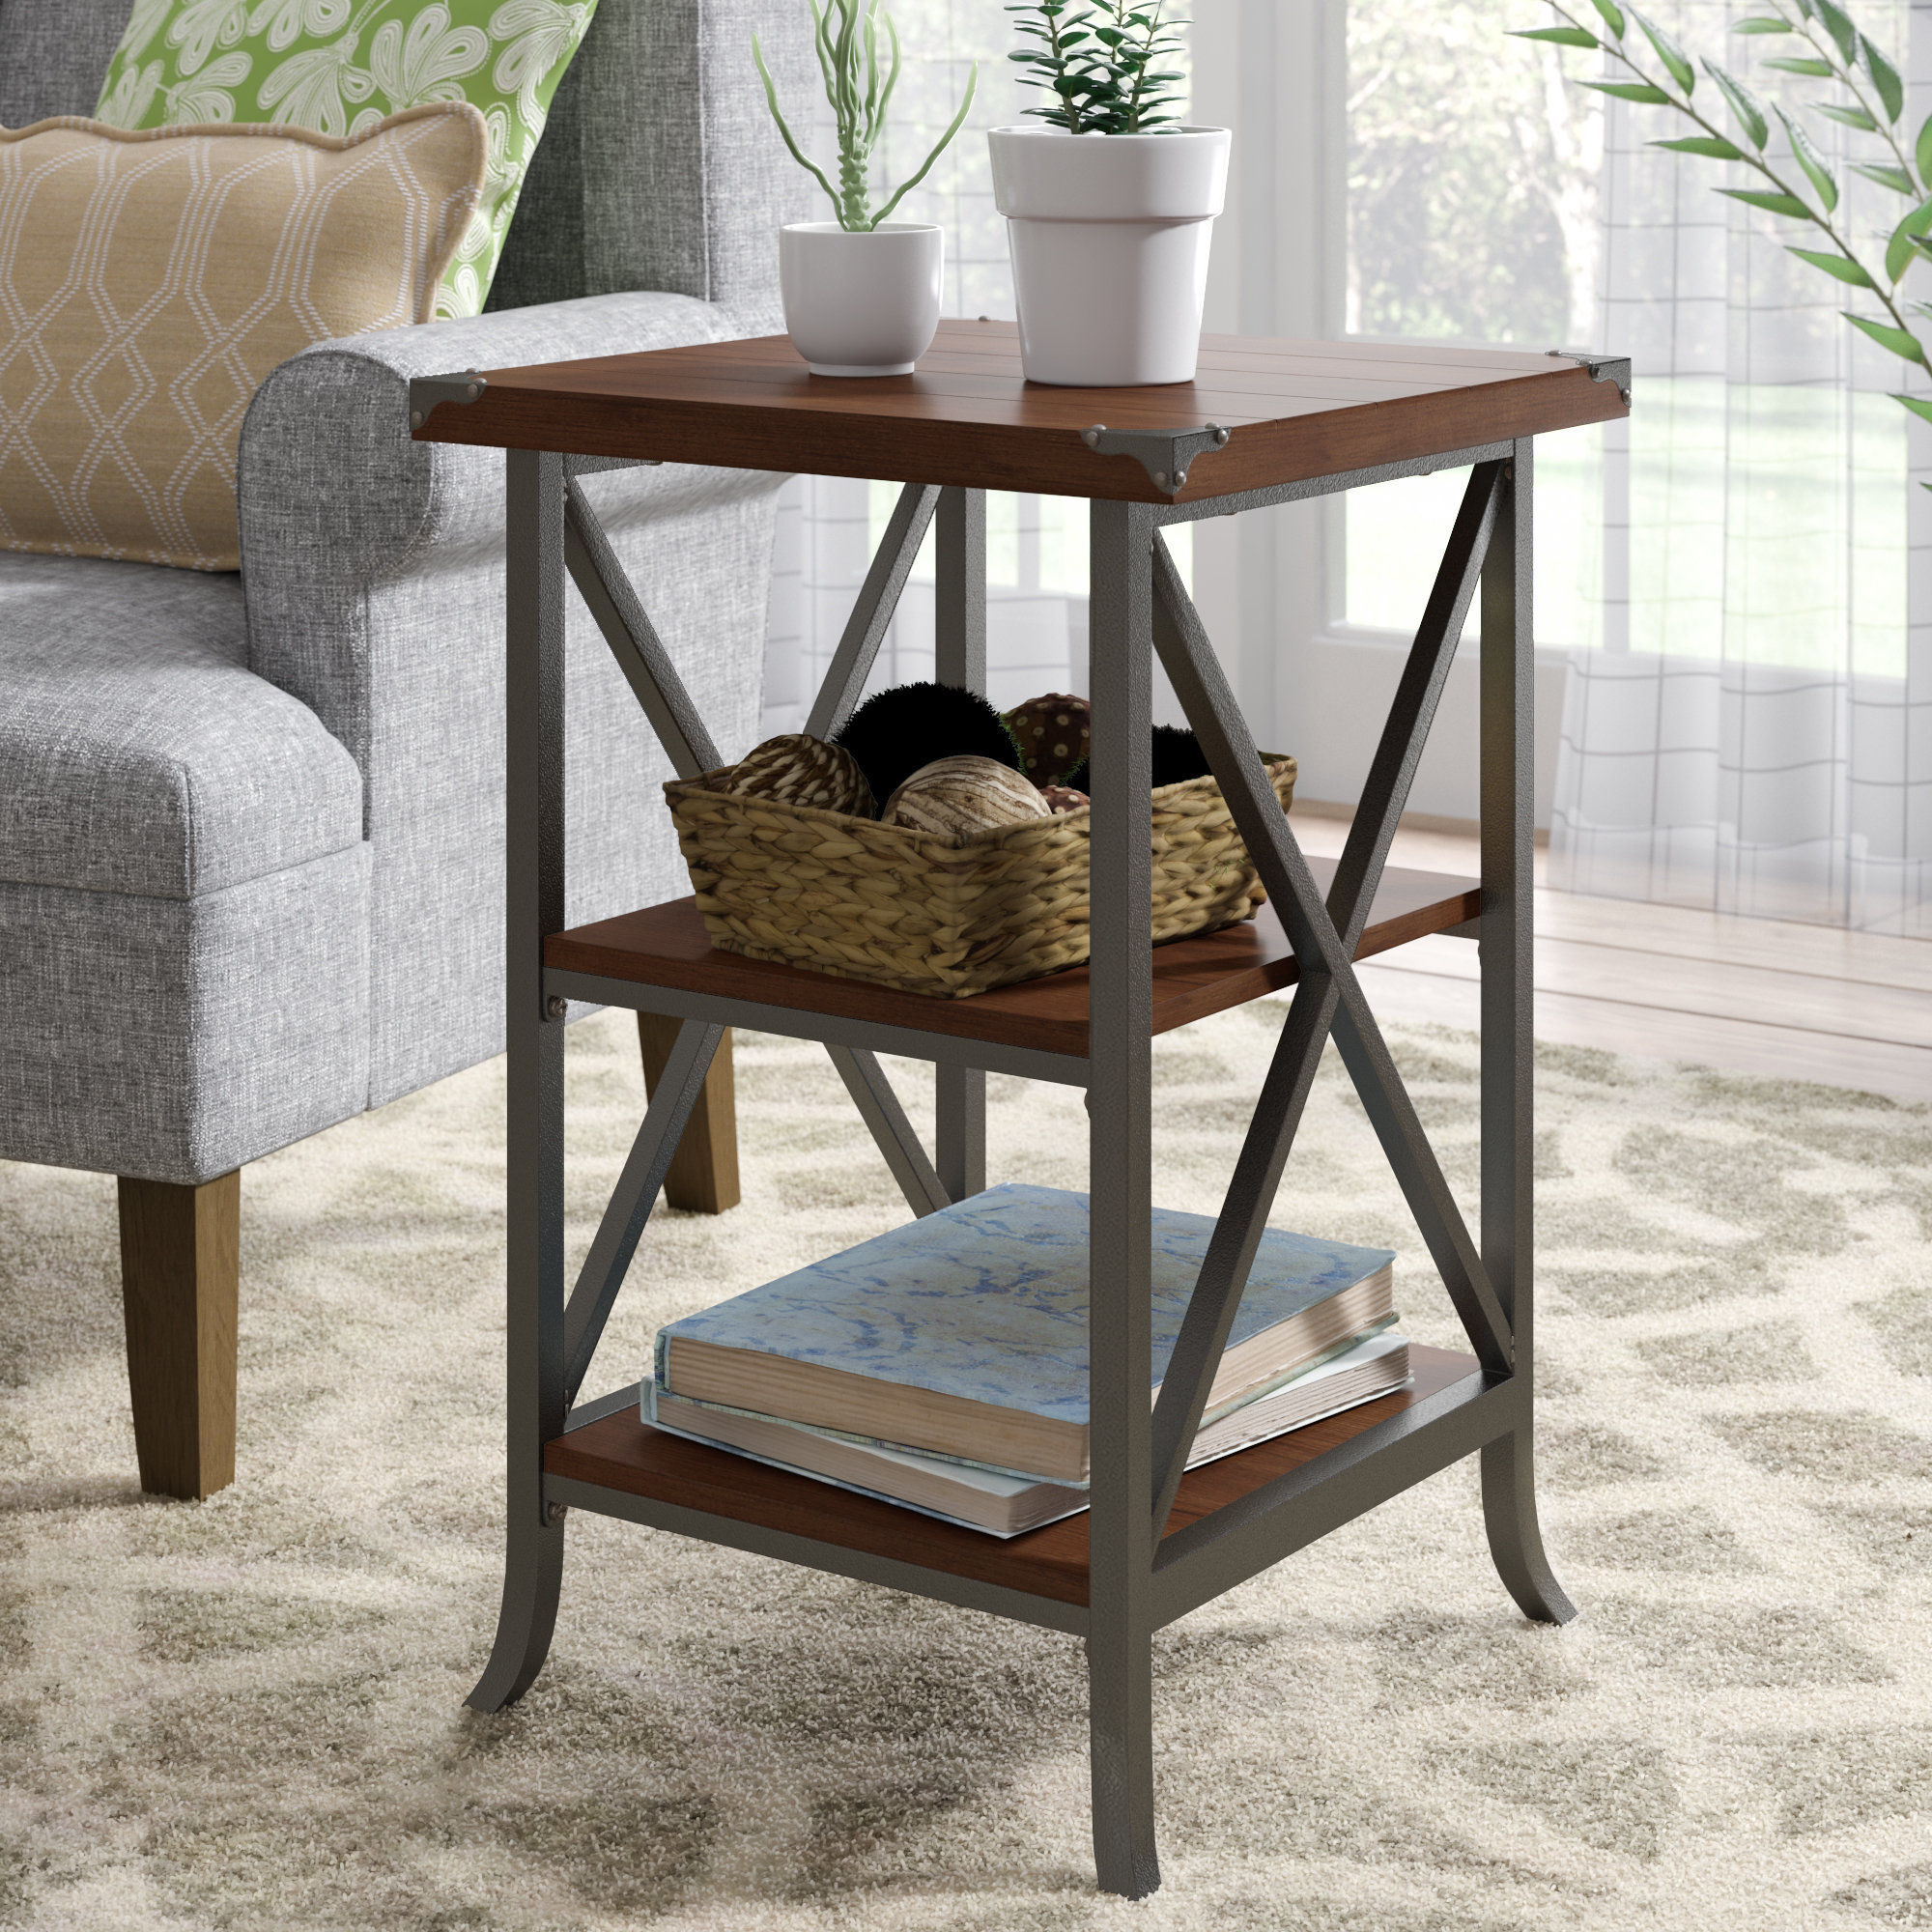 laurel foundry modern farmhouse justina end table reviews tables our sites weather sauder office storage cabinets unfinished bedroom vanity console width liberty furniture cabin